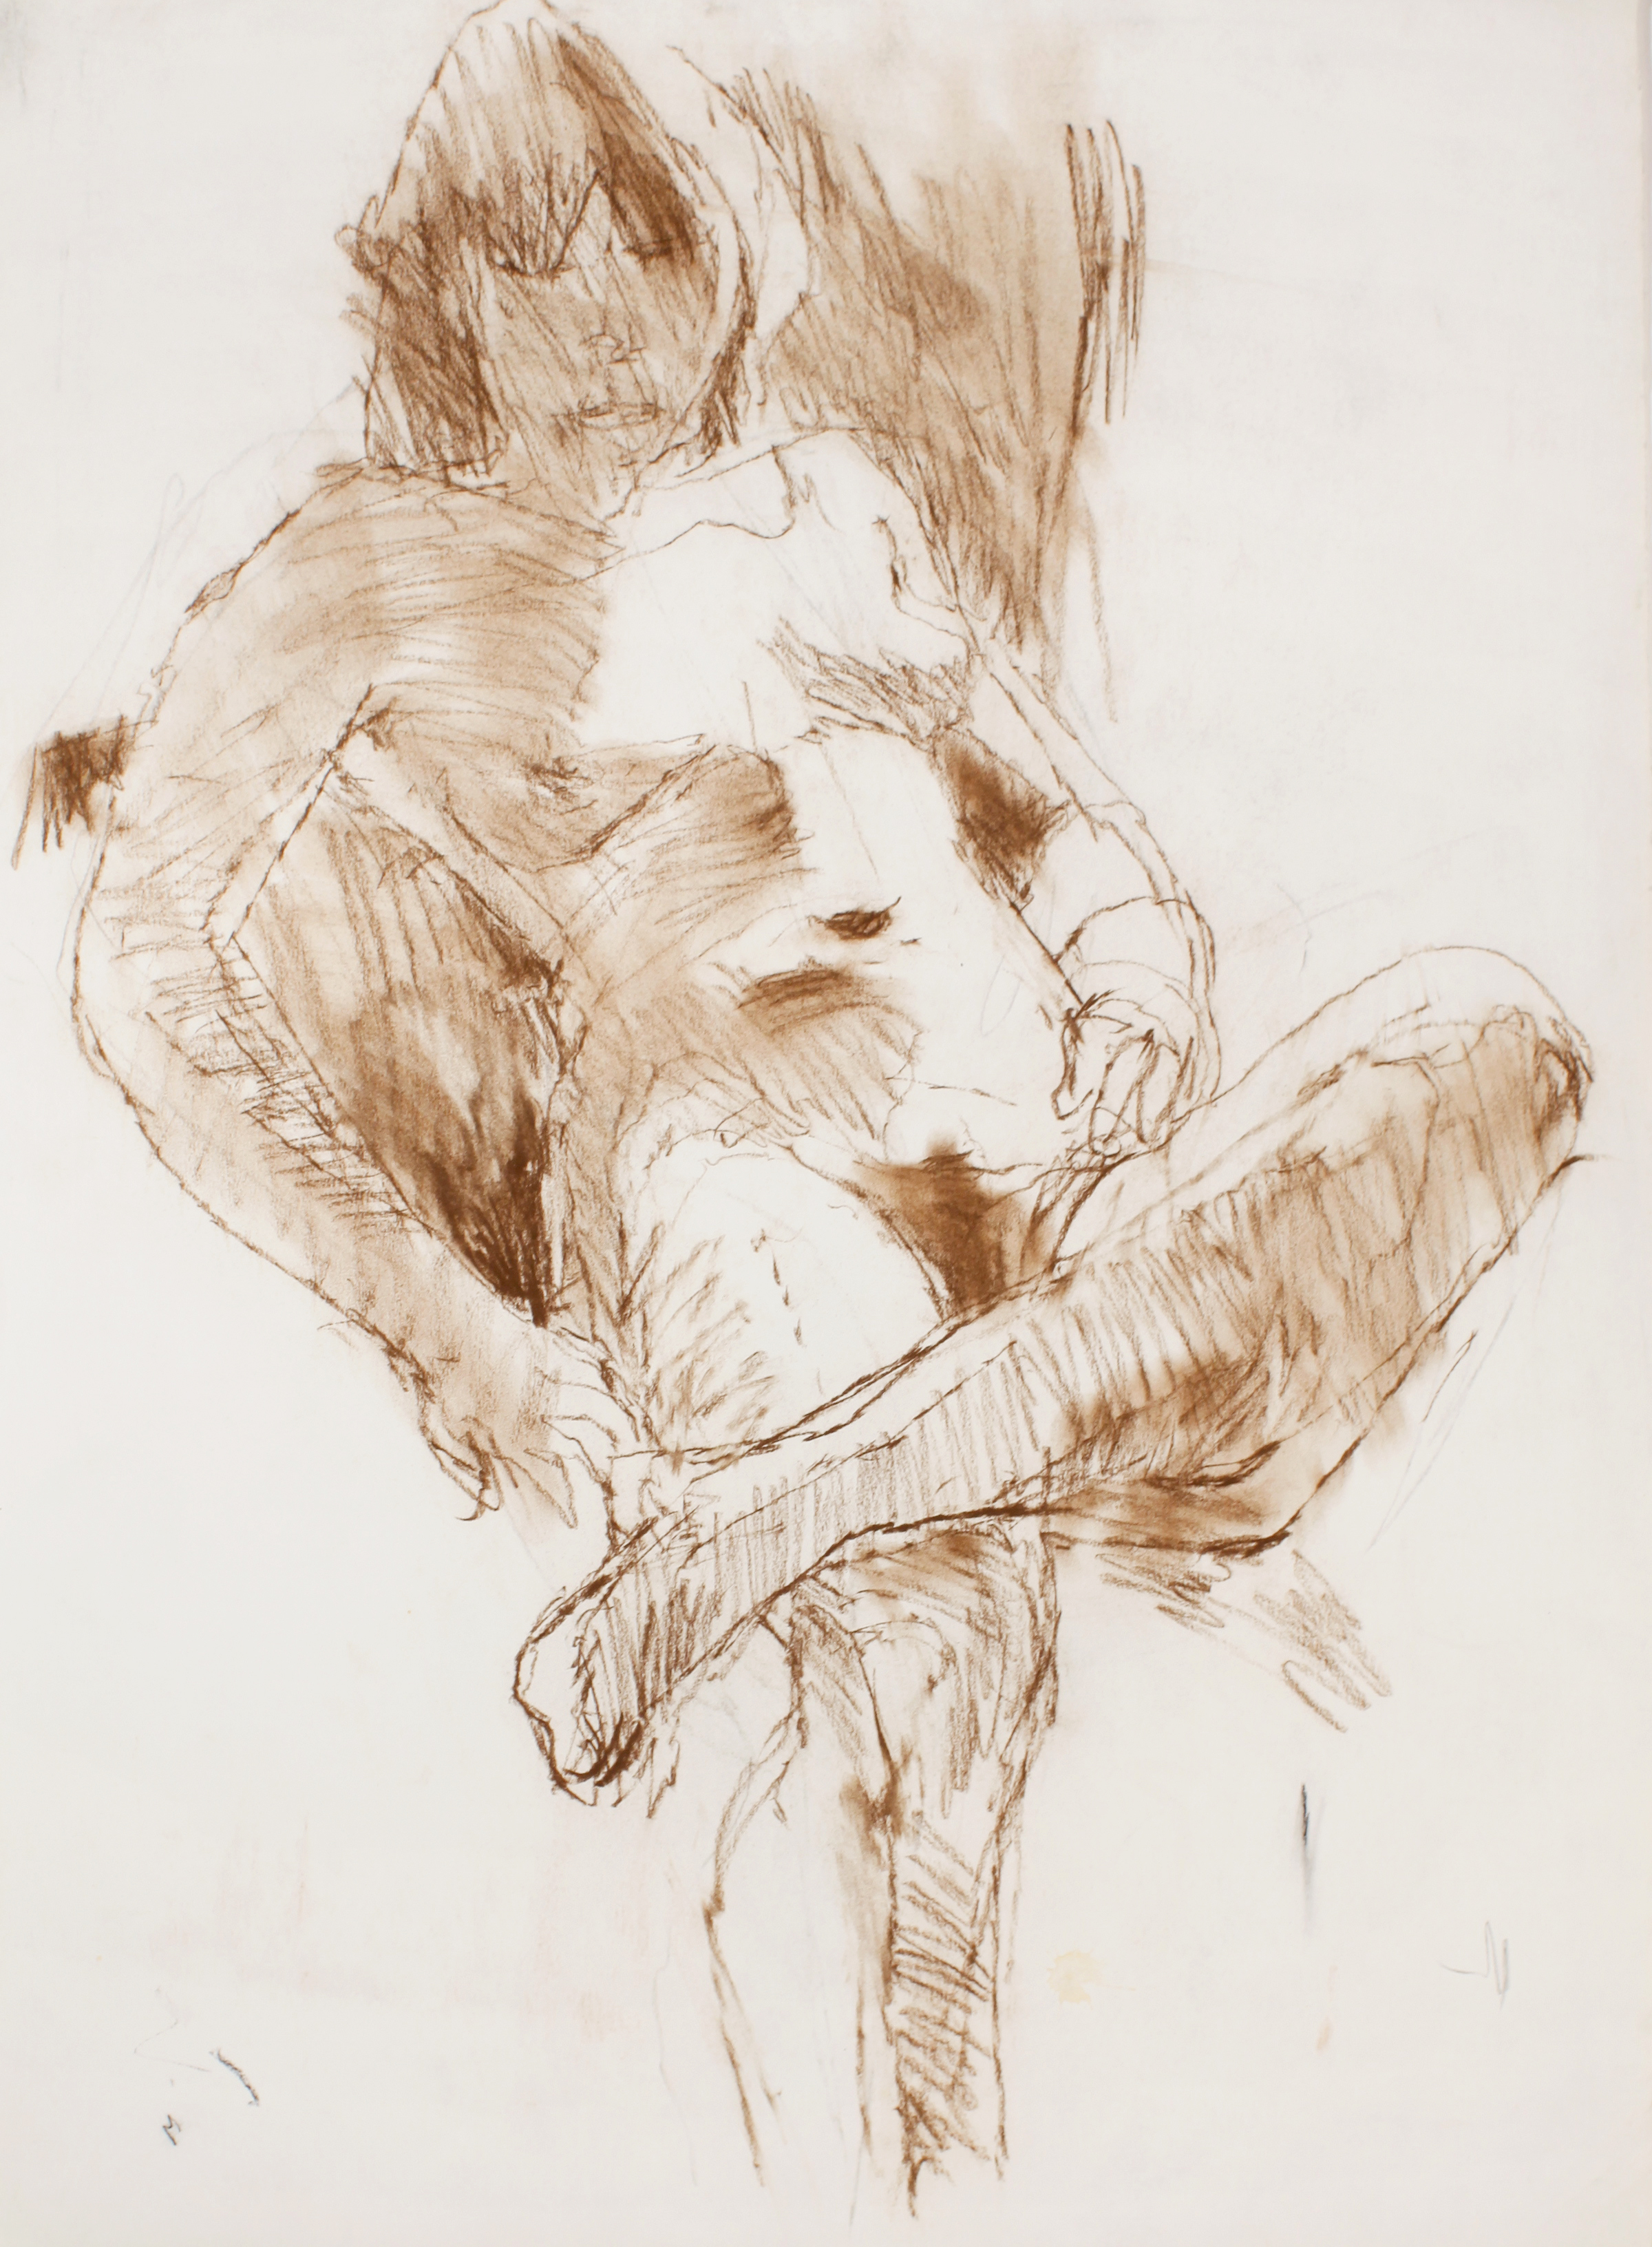 Reclining Nude with Leg Crossed Over Thigh